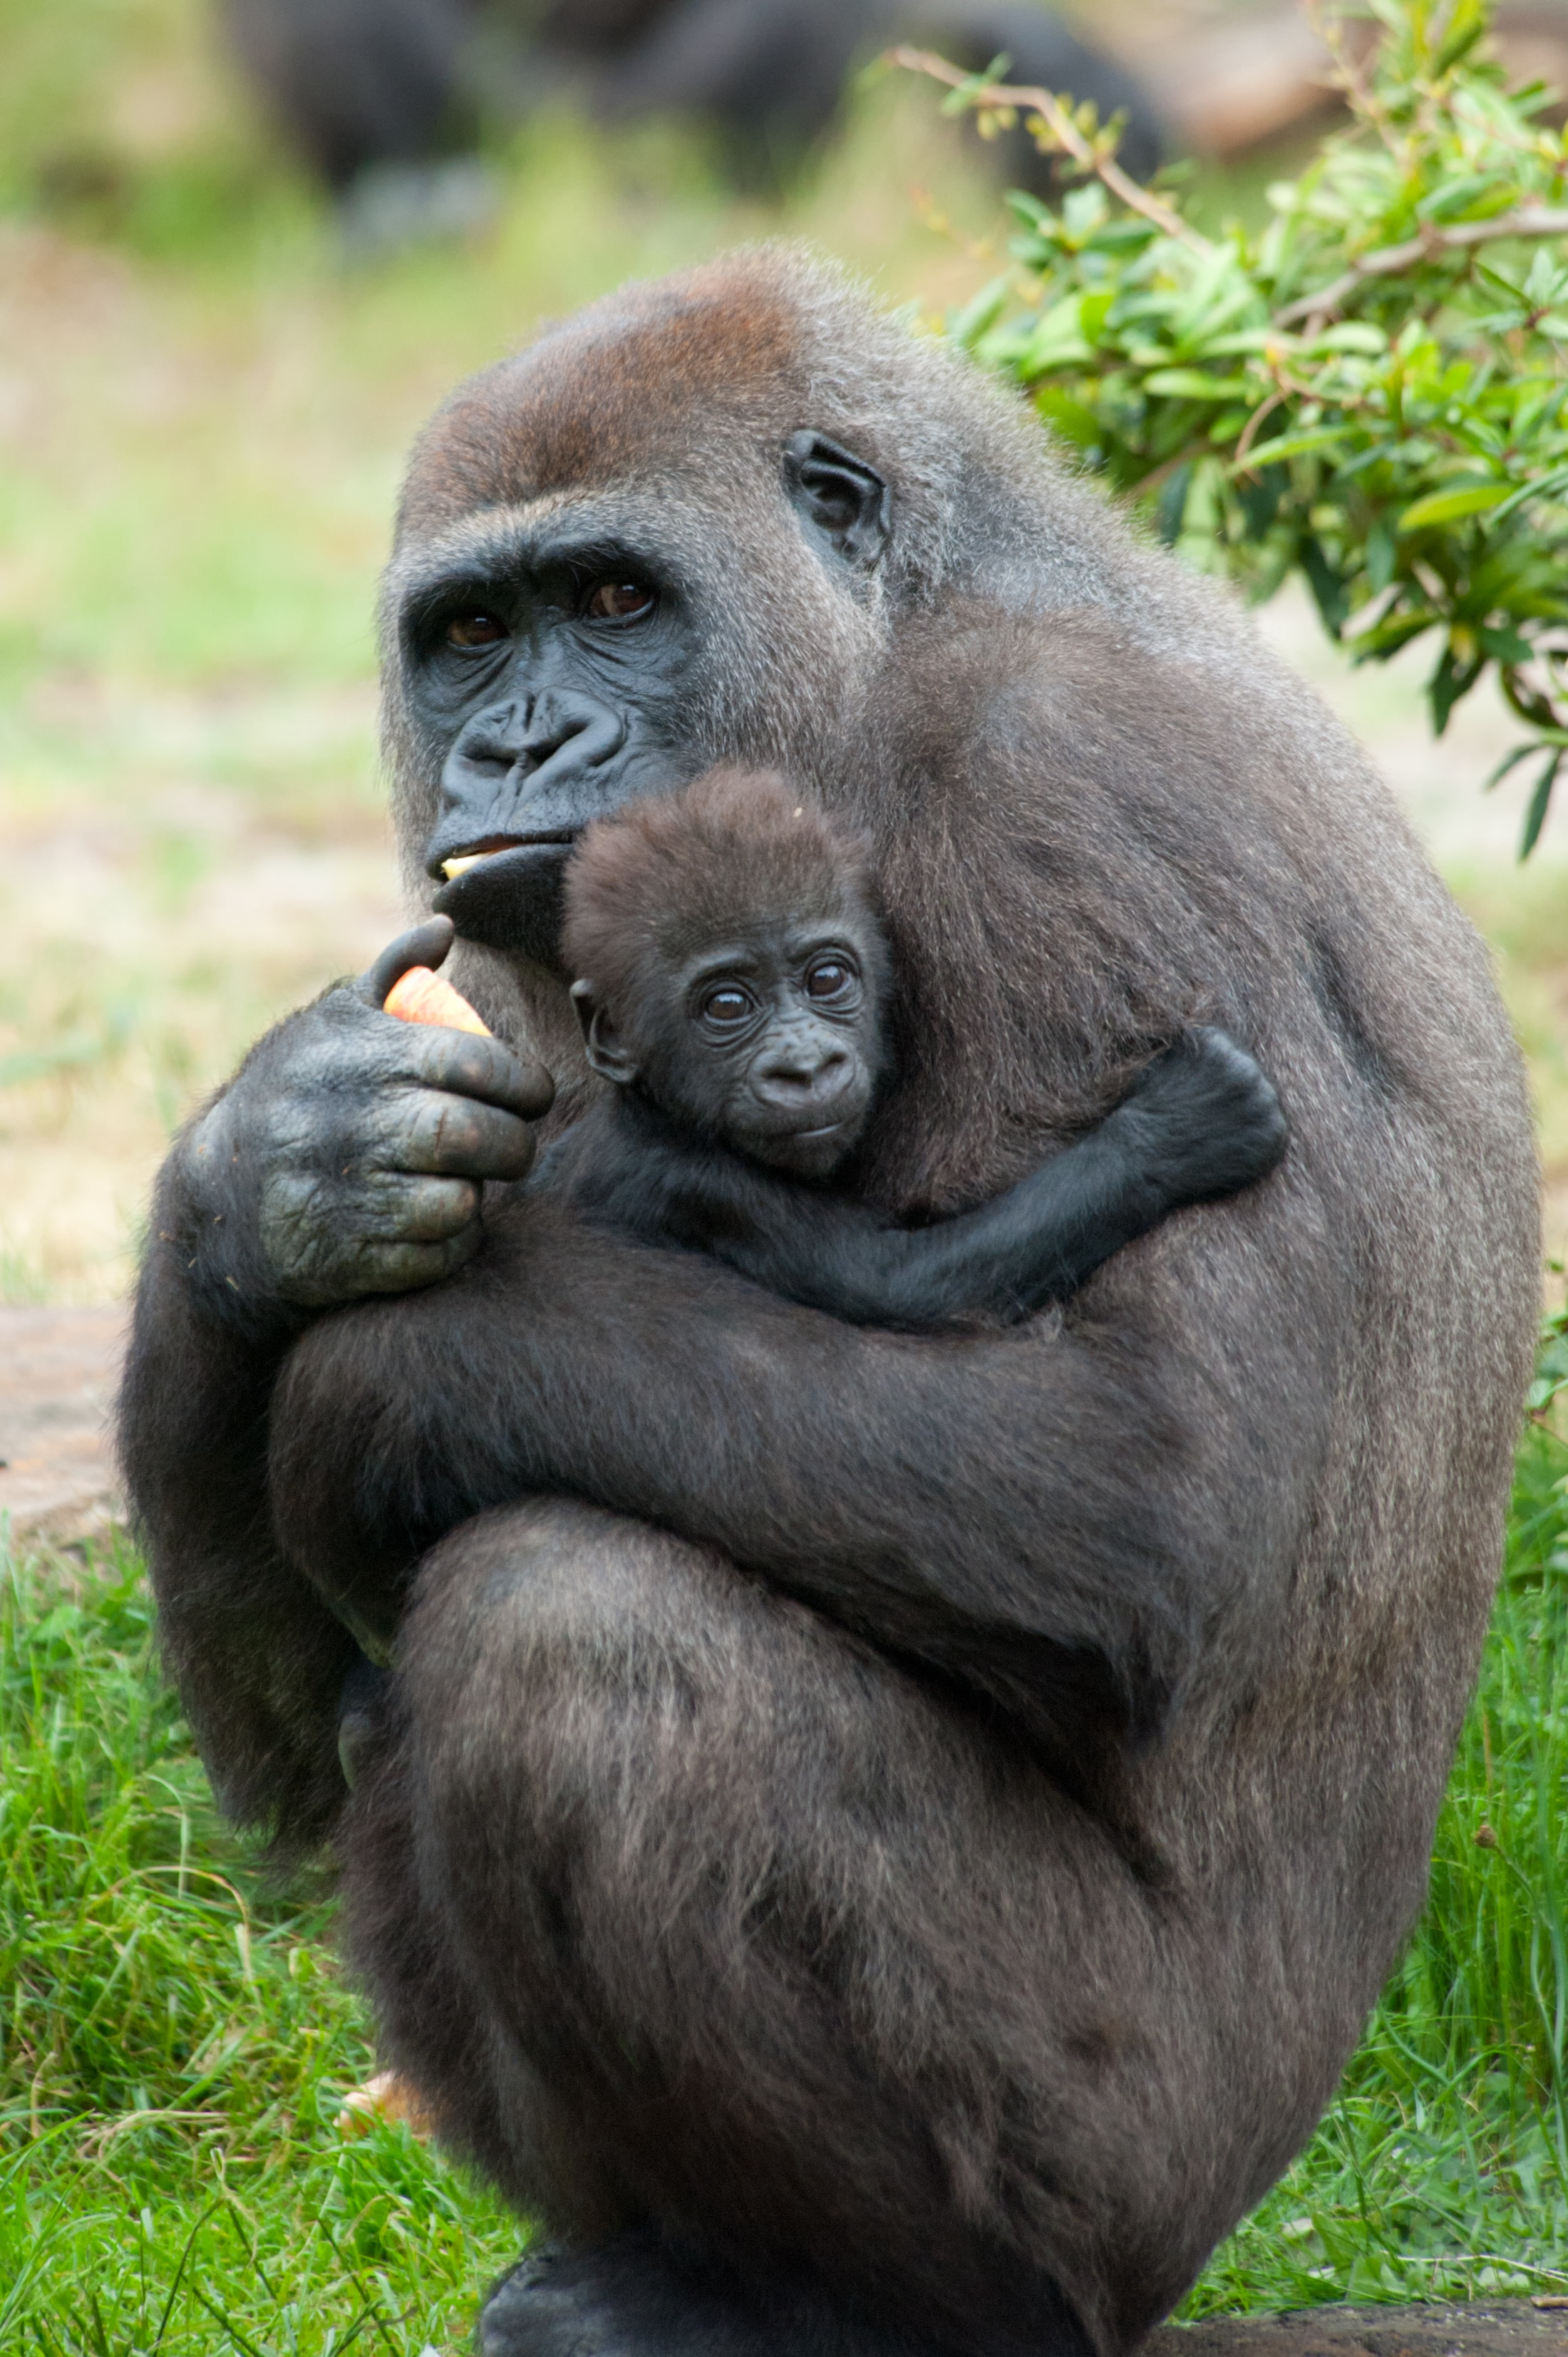 top 10 ways to save wildlife shareamerica gorilla and baby eric gevaert shutterstock com